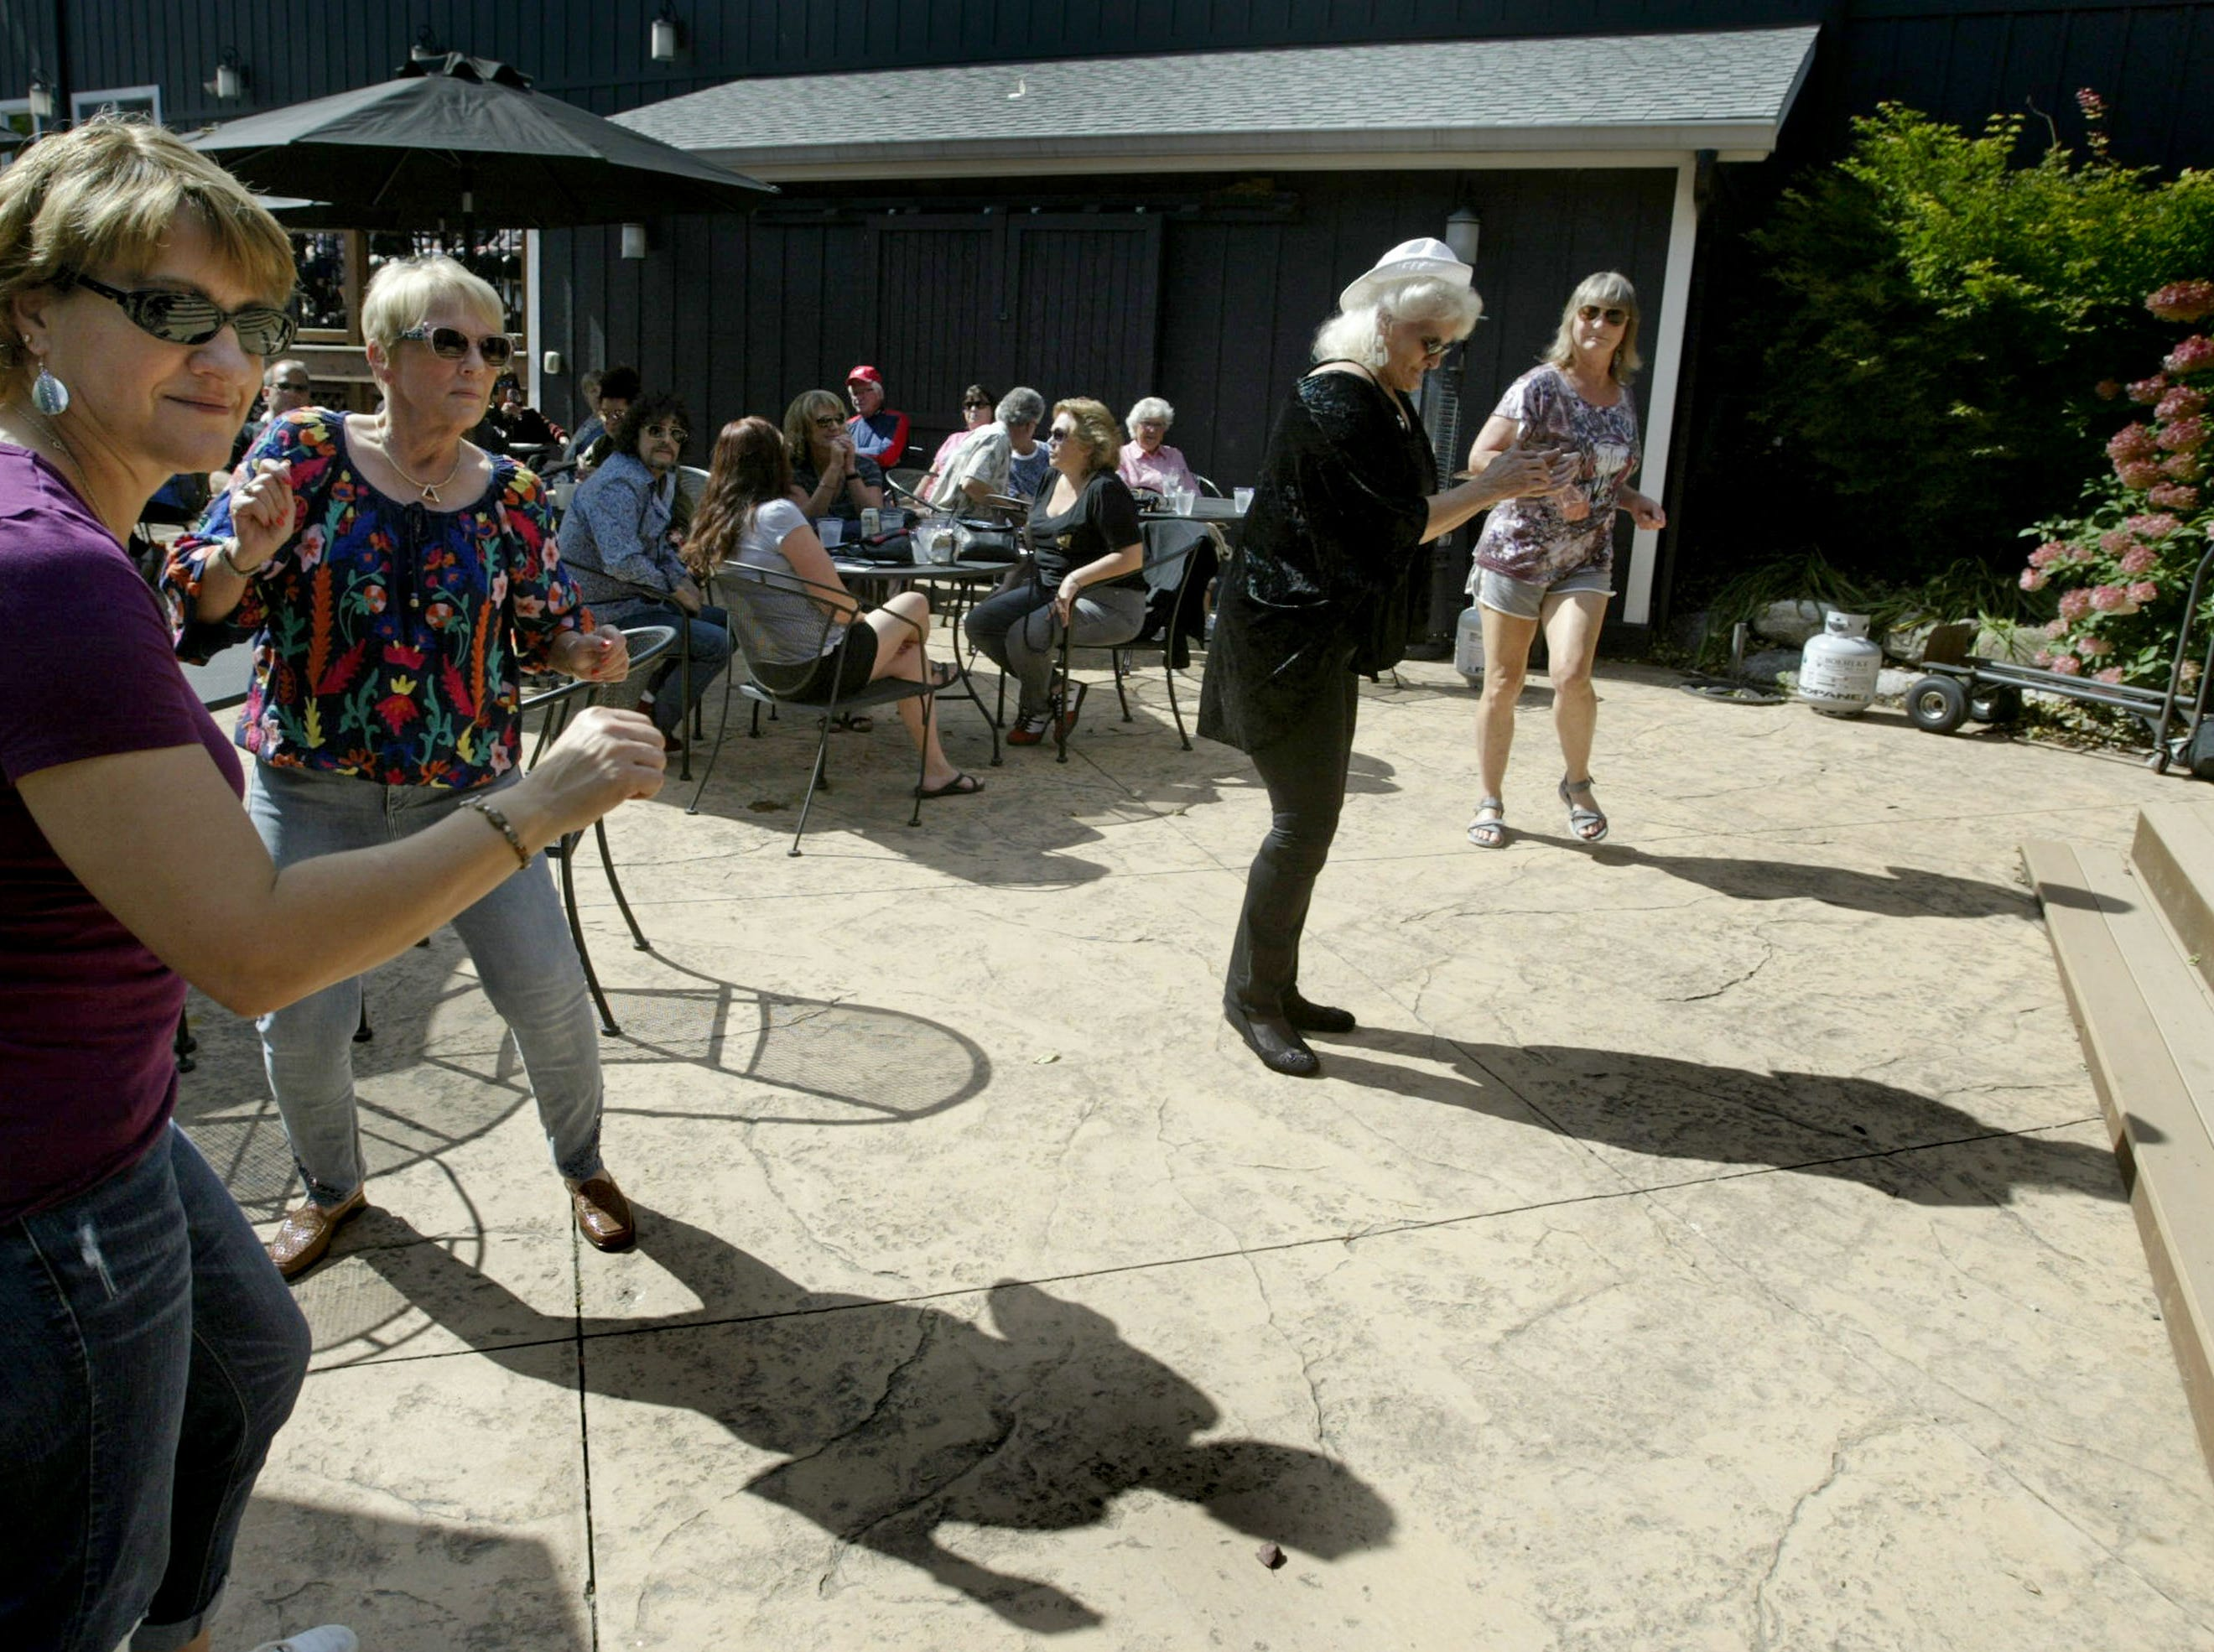 People and their shadows dance to the music of the Beer Belly Idols at the Harvest Festival & Grape Stomp at The Blind Horse Restaurant and Winery, Saturday, September 22, 2018, in Kohler, Wis.